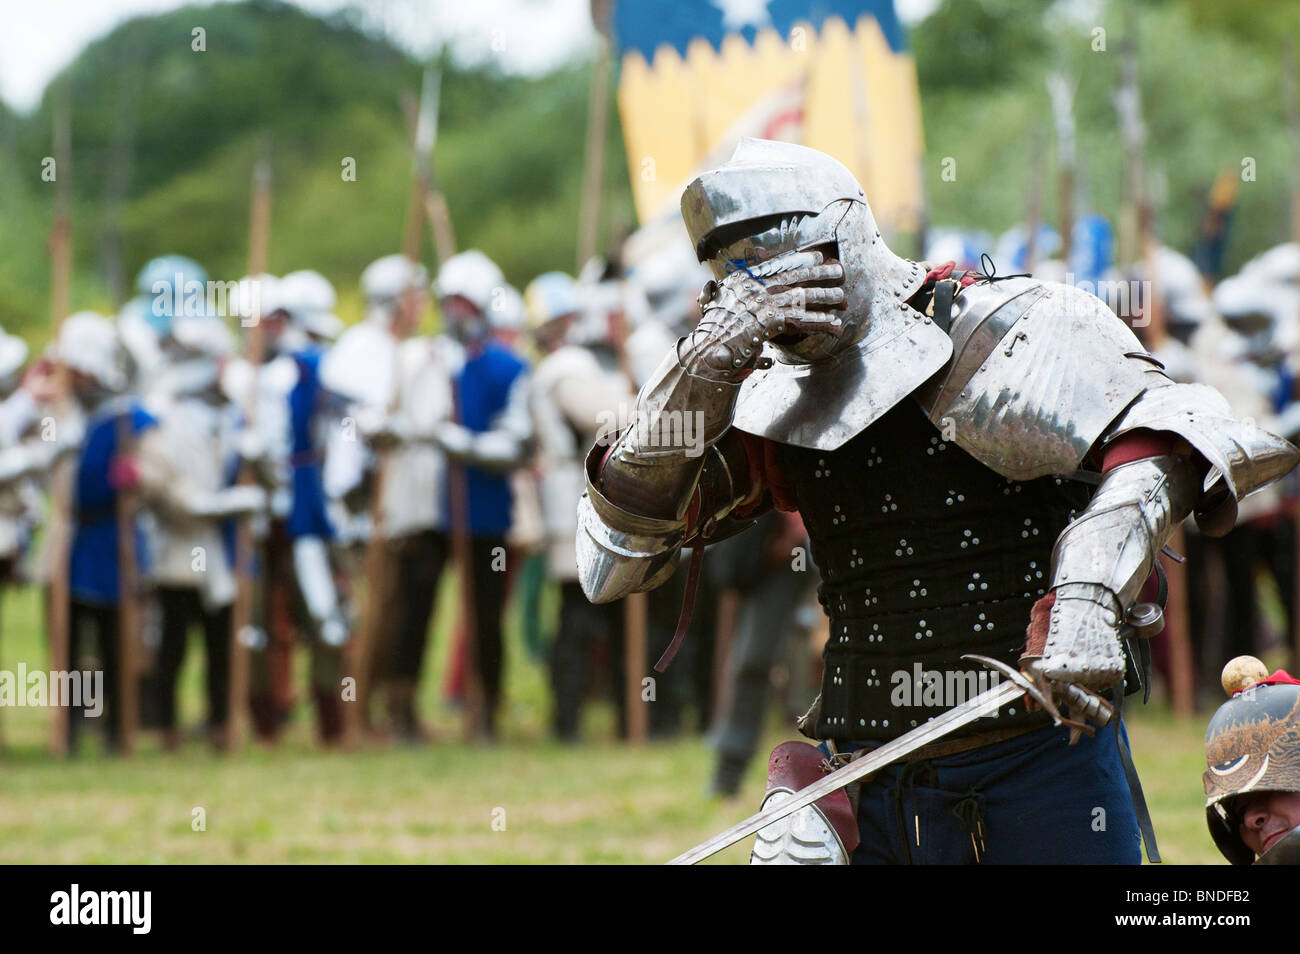 Wounded Knight in armor on the battlefield at the re-enactment of the battle of Tewkesbury. Medieval festival 2010. - Stock Image